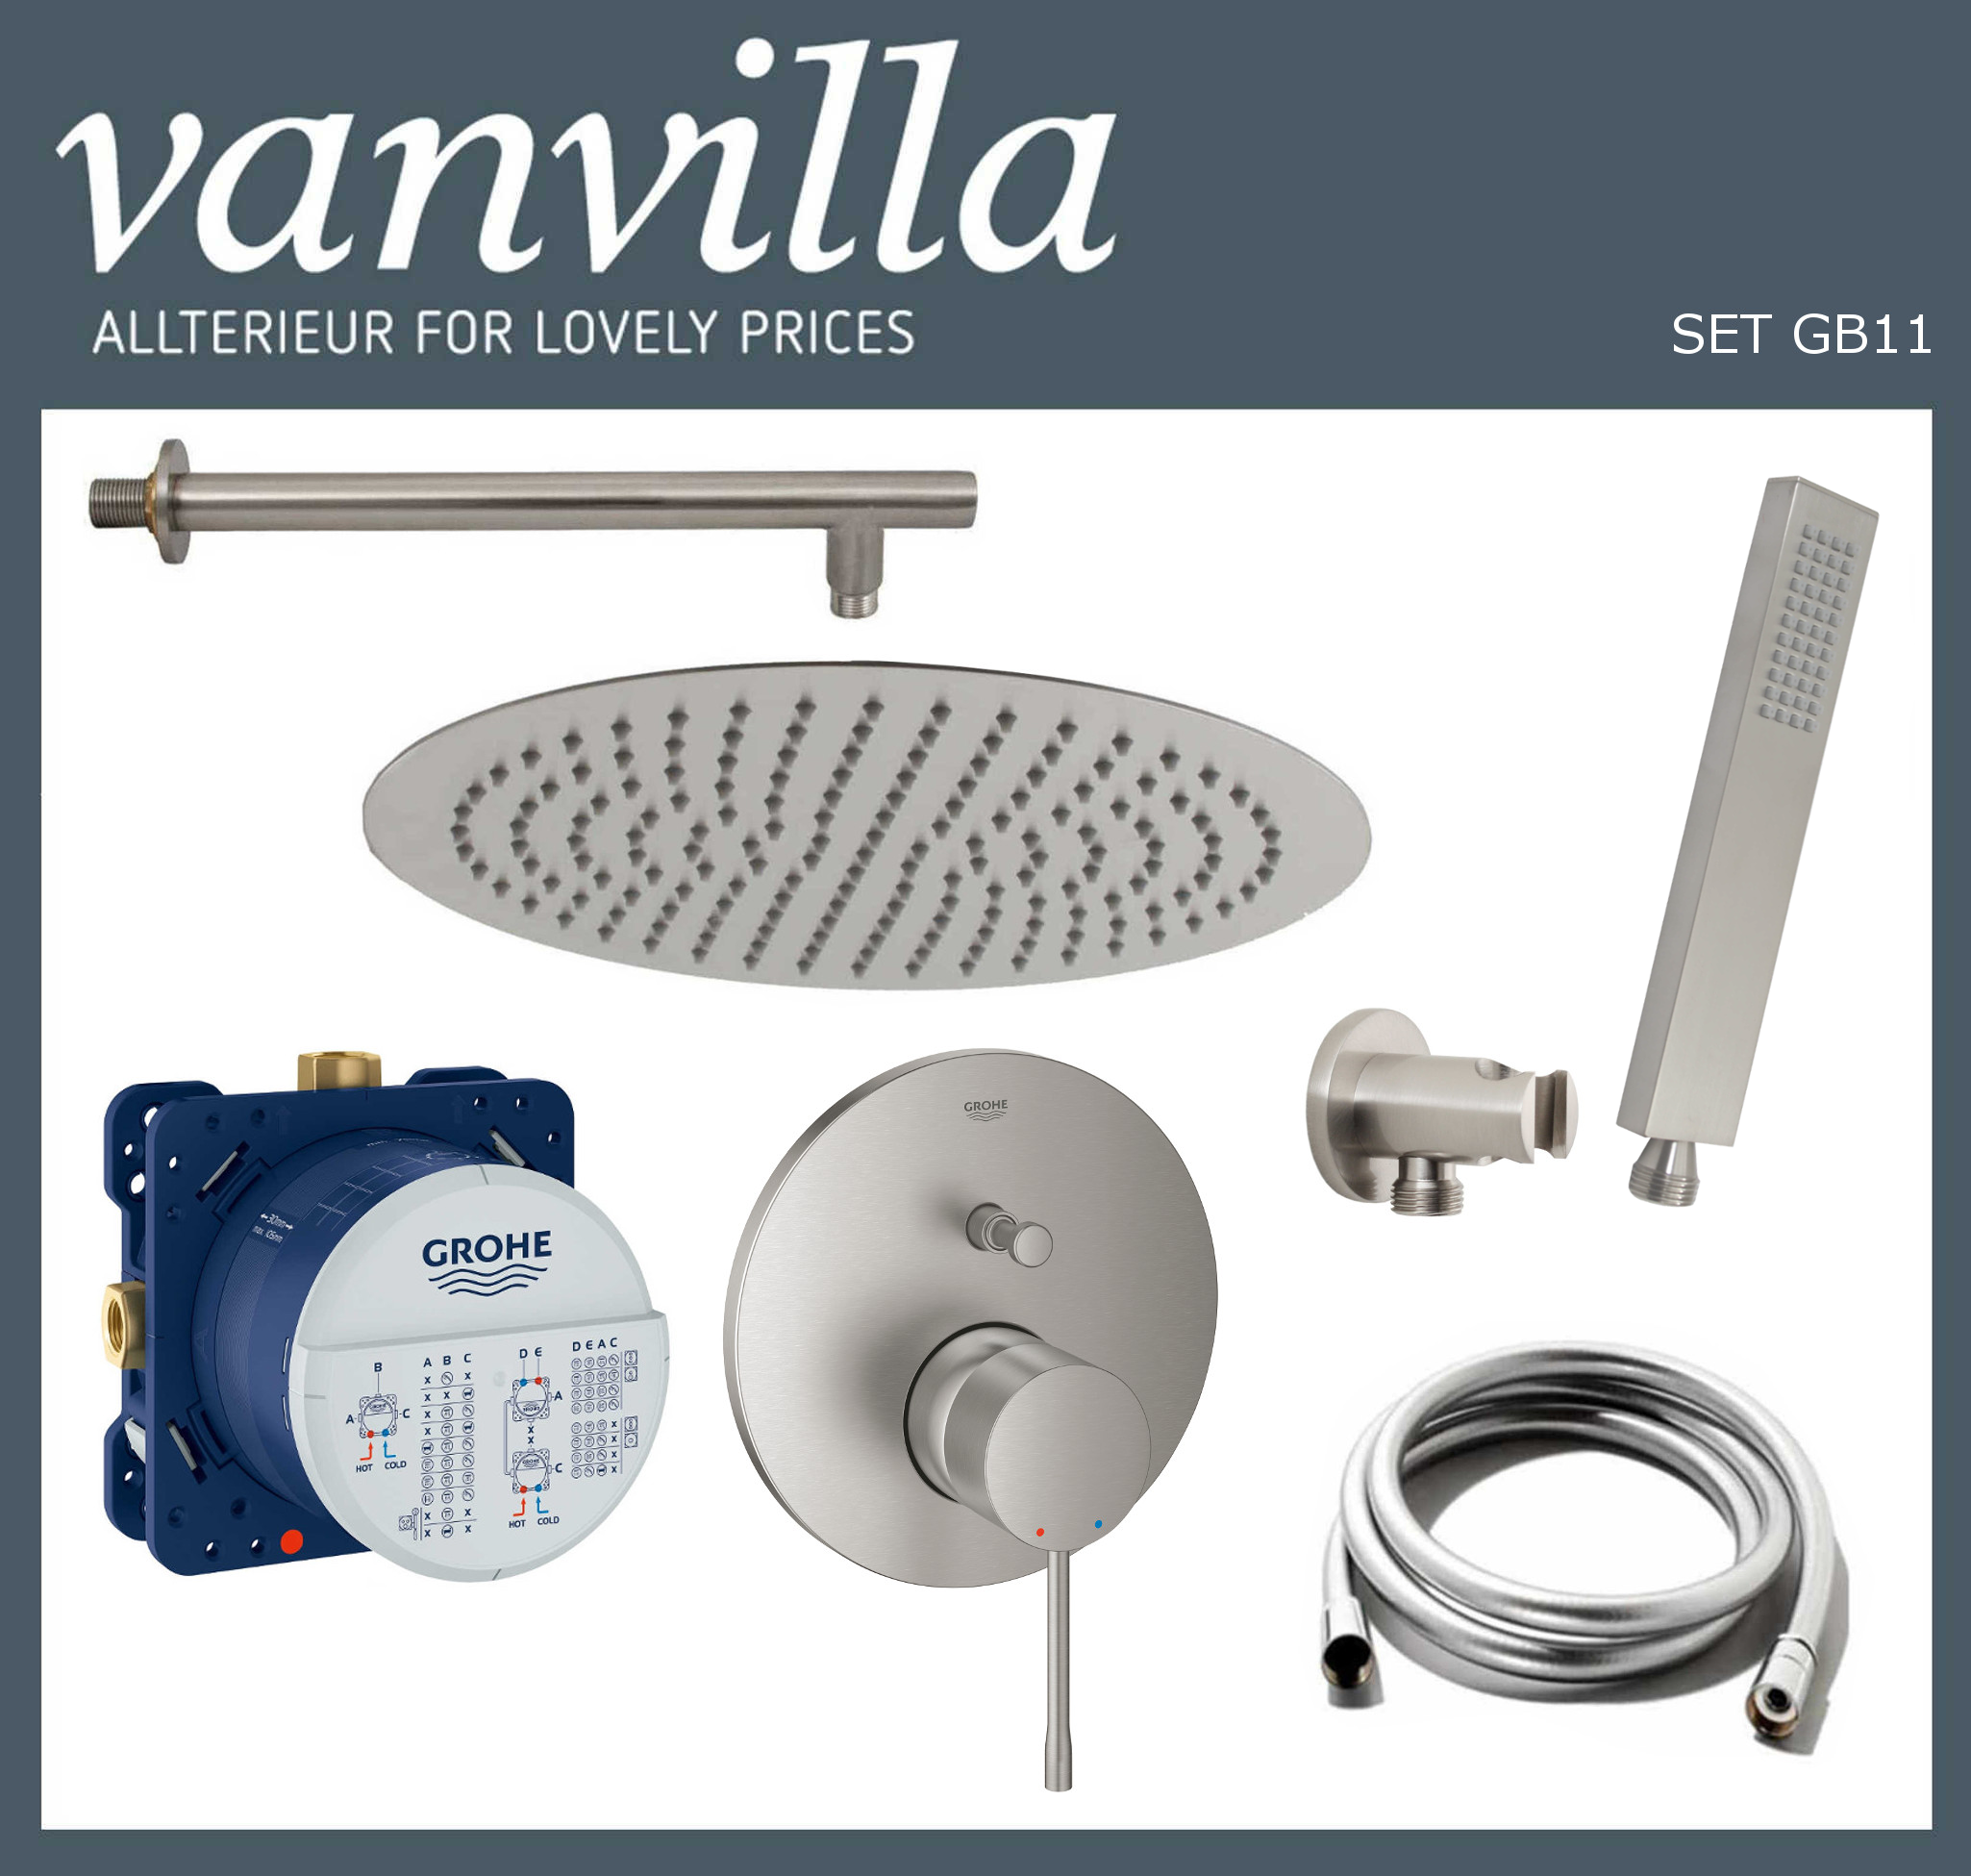 SET GB11 UP vanvilla mit Duscharmatur Grohe Essence Supersteel